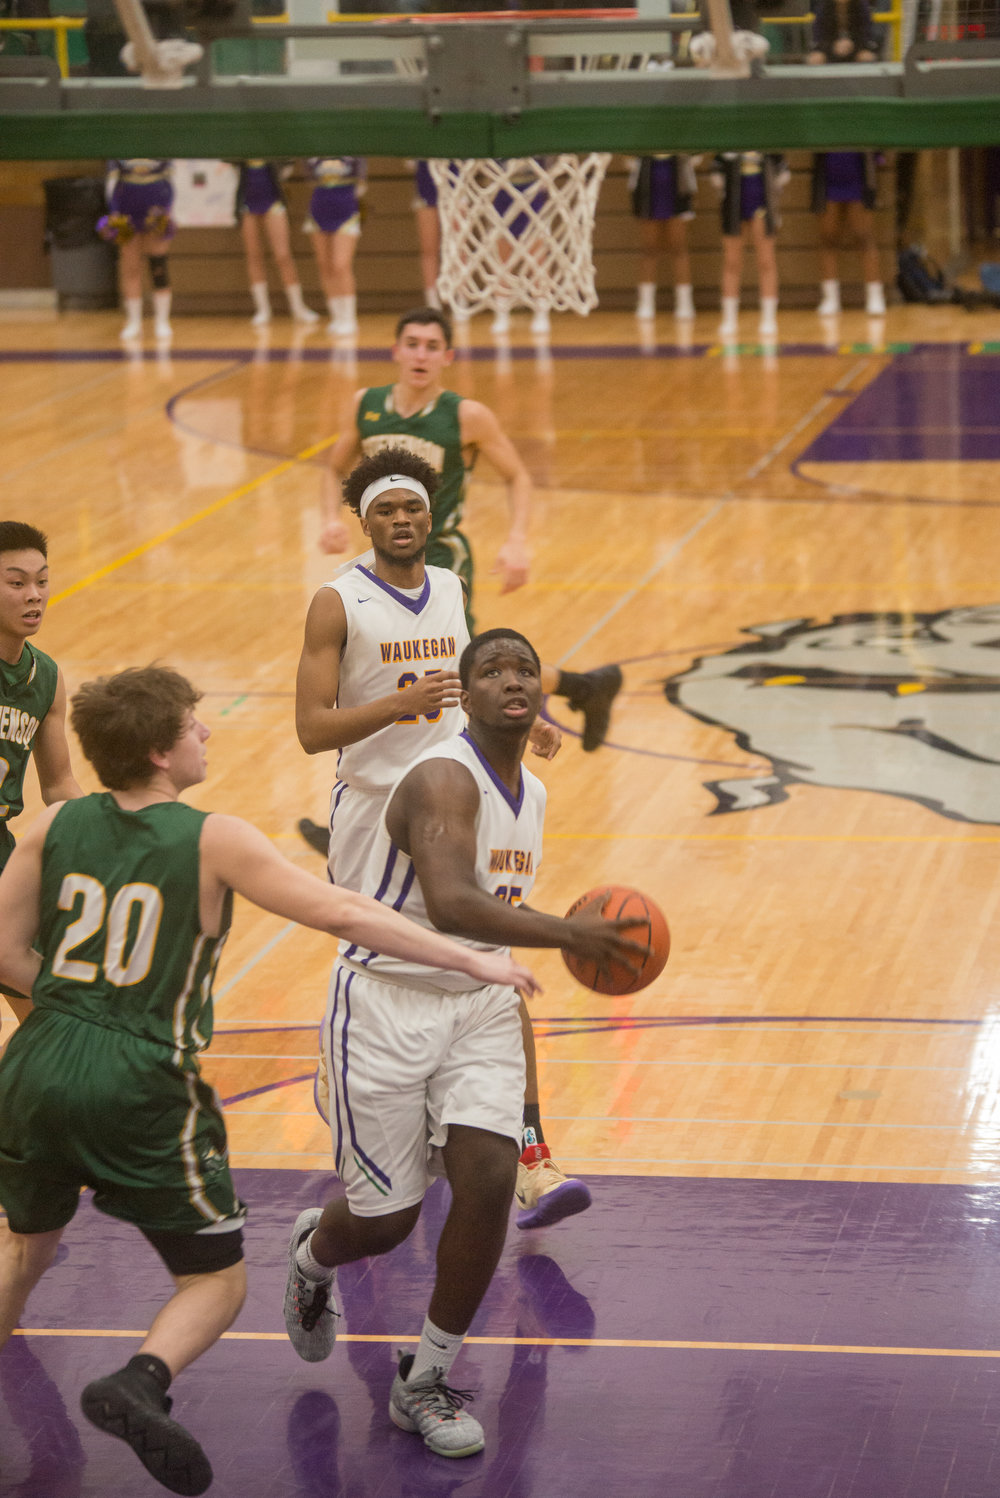 26-Kavon-Colder-drives-down-the-lane-vs-Stevenson.jpg